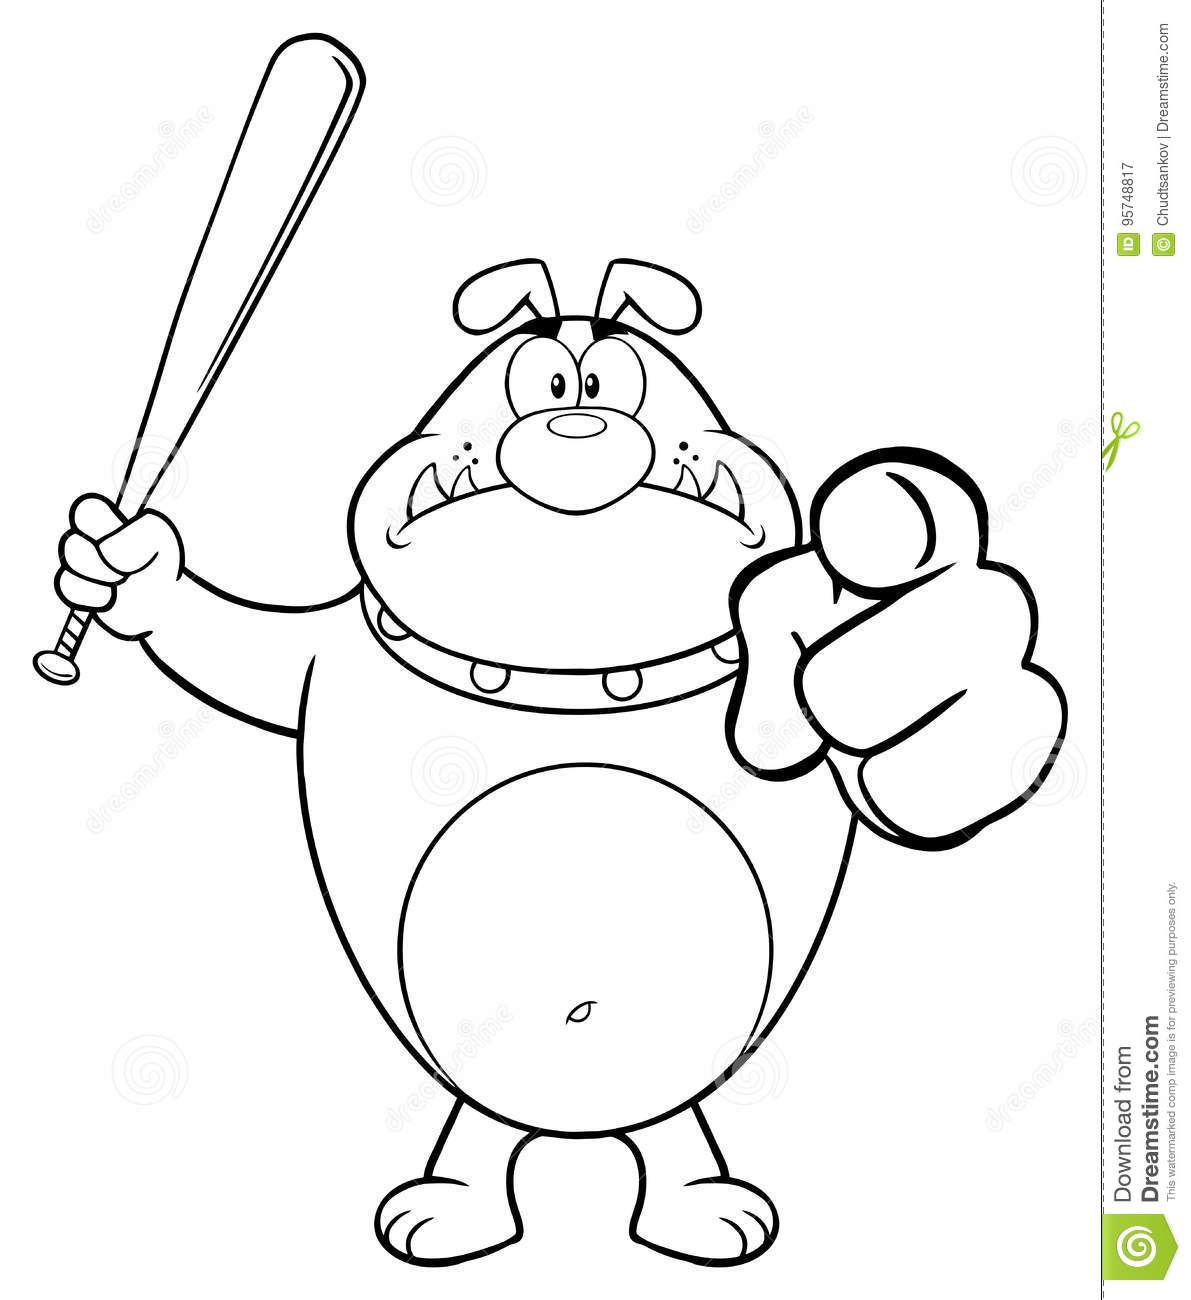 Black And White Angry Bulldog Cartoon Mascot Character